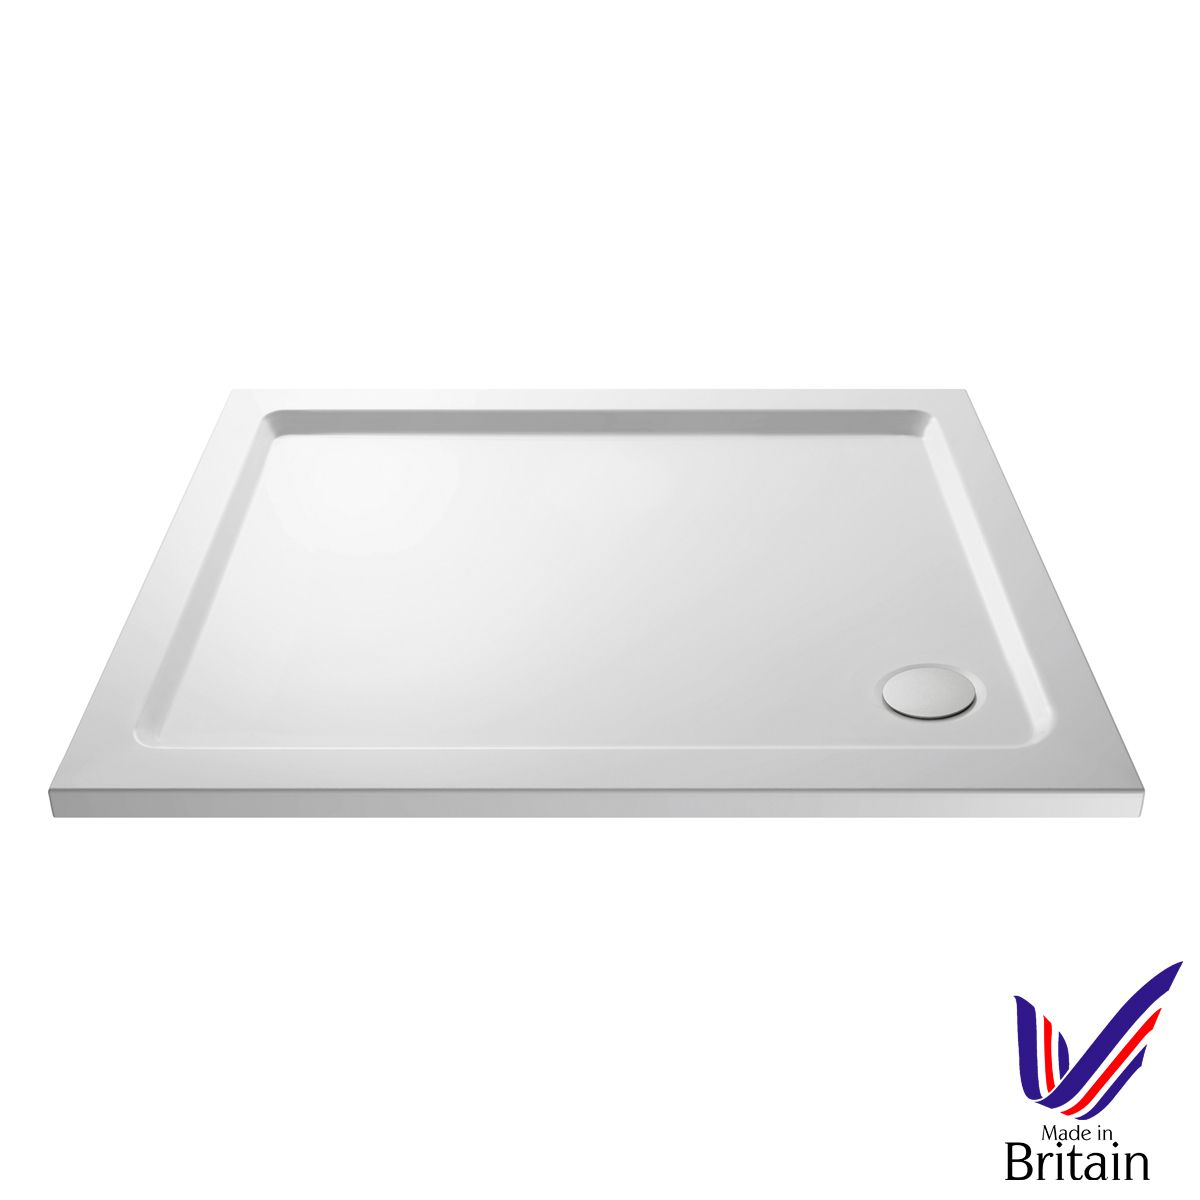 1000 x 800 Shower Tray Rectangular Low Profile by Pearlstone